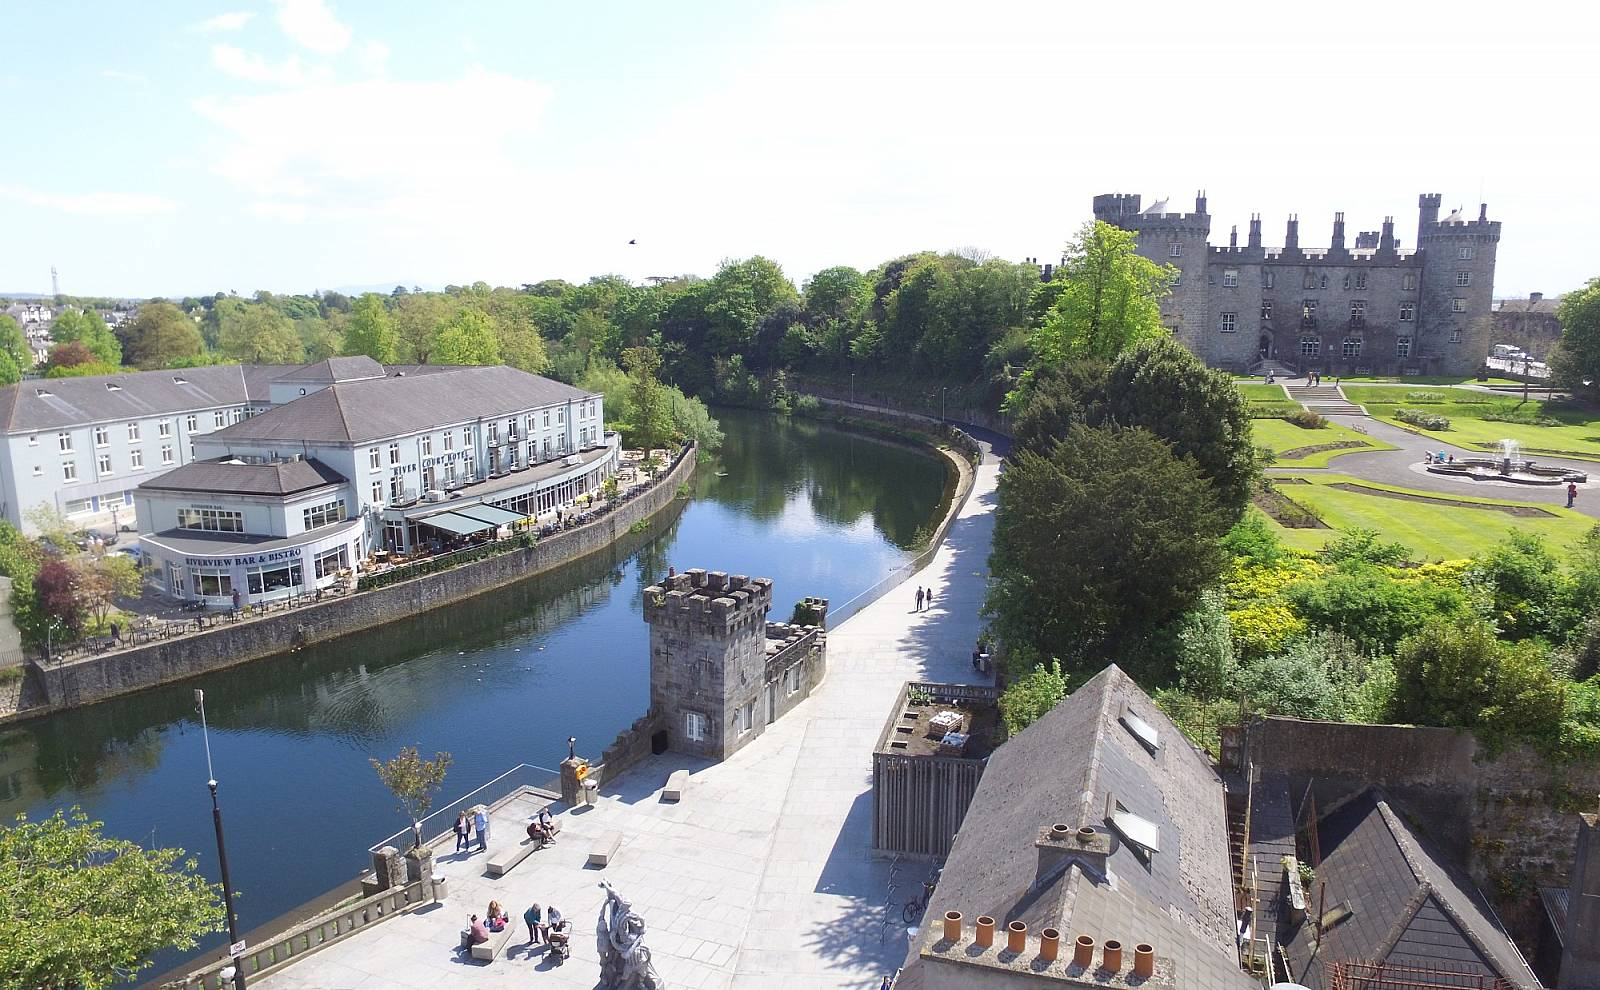 Kilkenny River Court  Hotel  Discover, Dine & Dream (2 Night Offer) fr €99pps